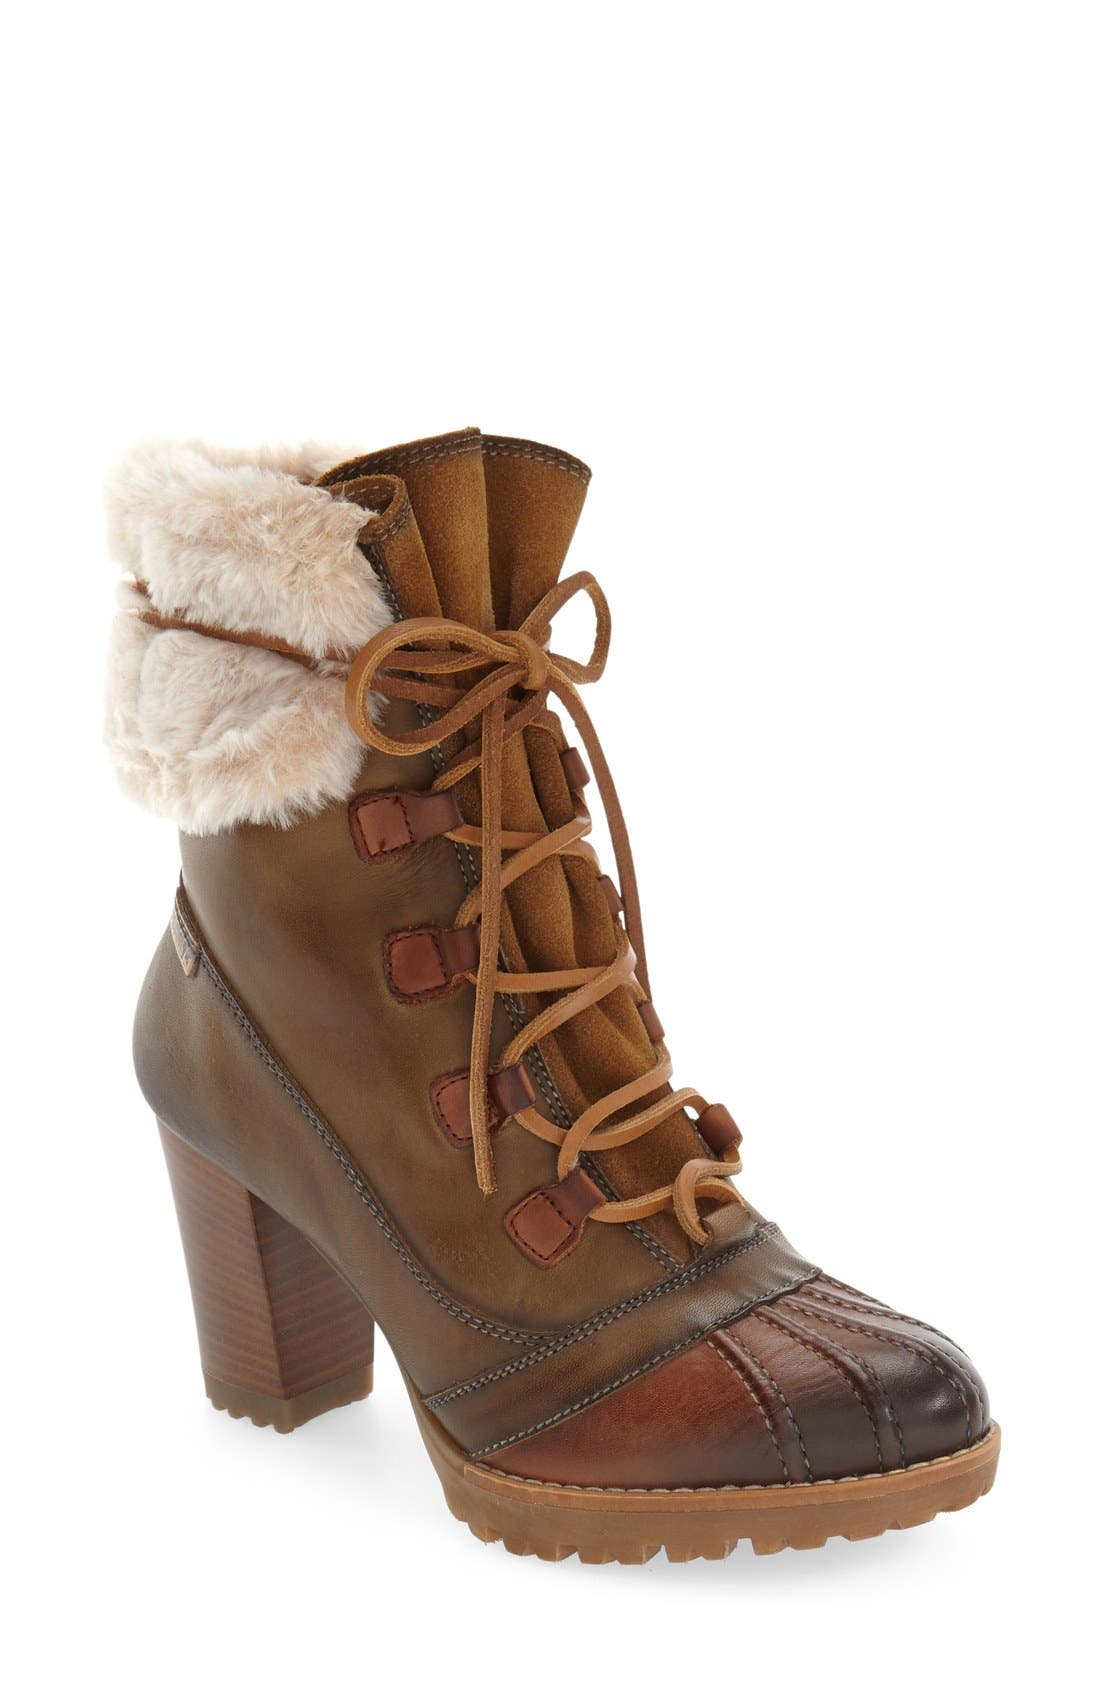 'Connelly' Lace-Up Boot, Main, color, 205